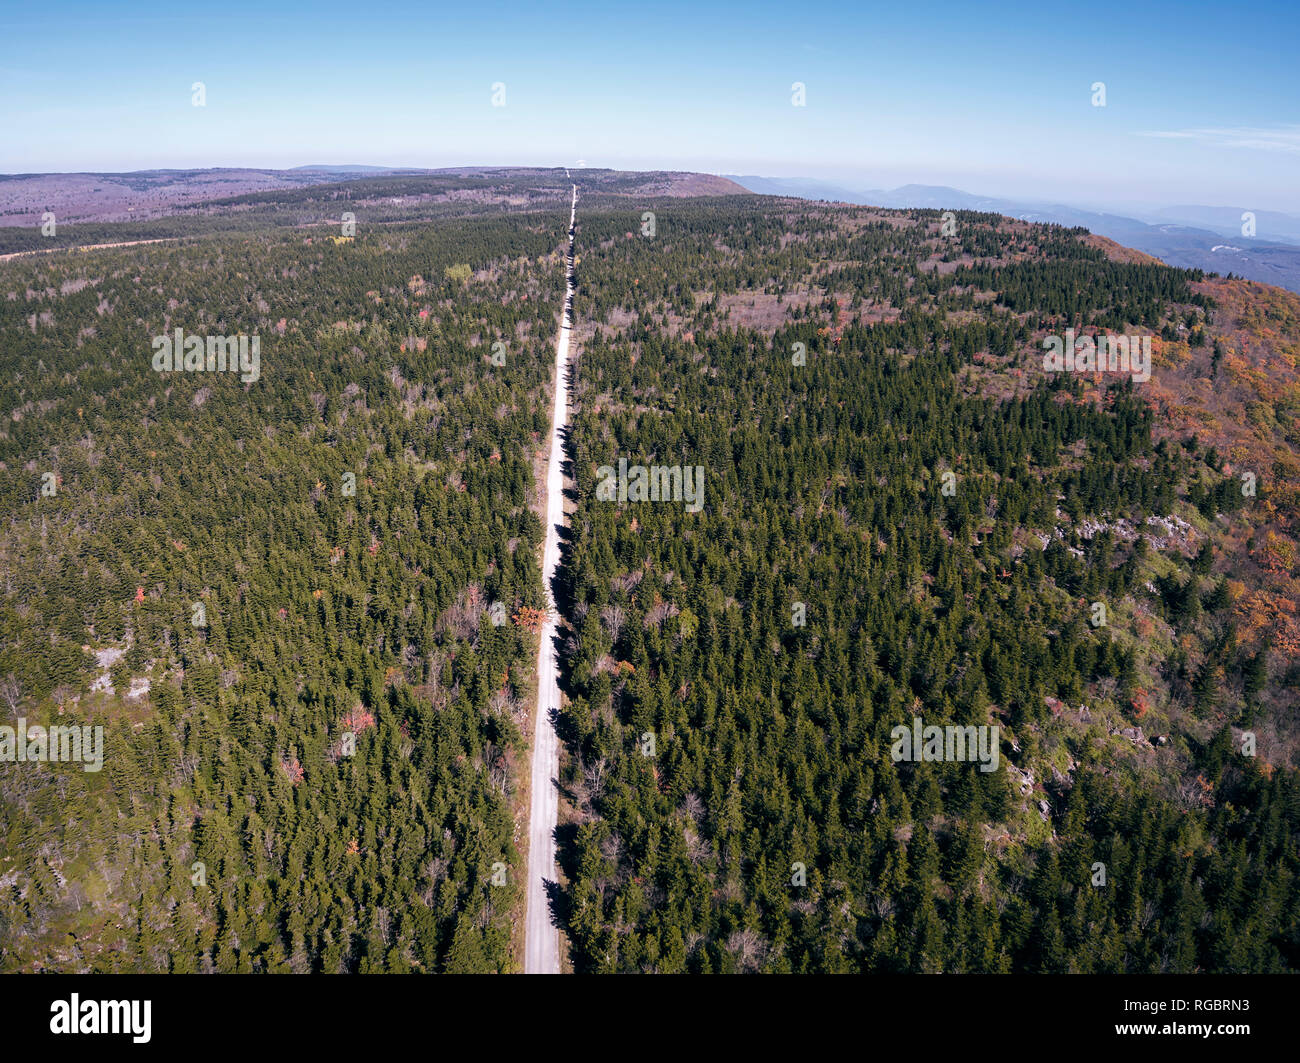 USA, West Virginia, Aerial view of road through Dolly Sods Wilderness area Stock Photo